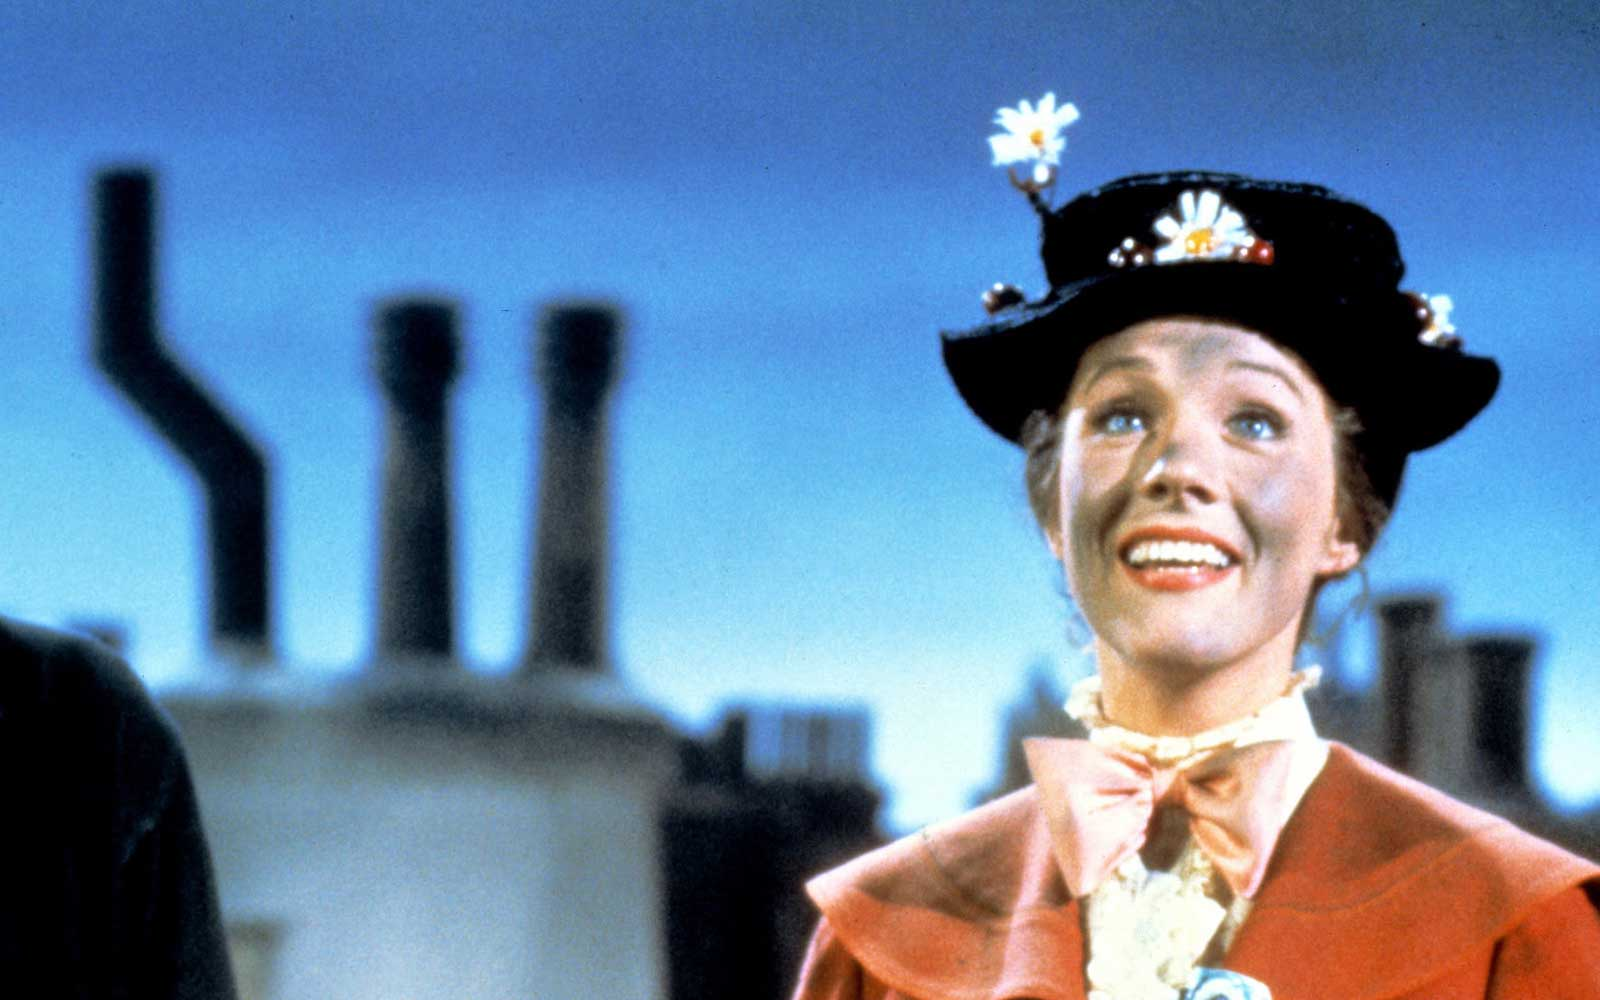 Fans of Mary Poppins Can Fly Umbrellas and Sweep Chimneys at This Festival